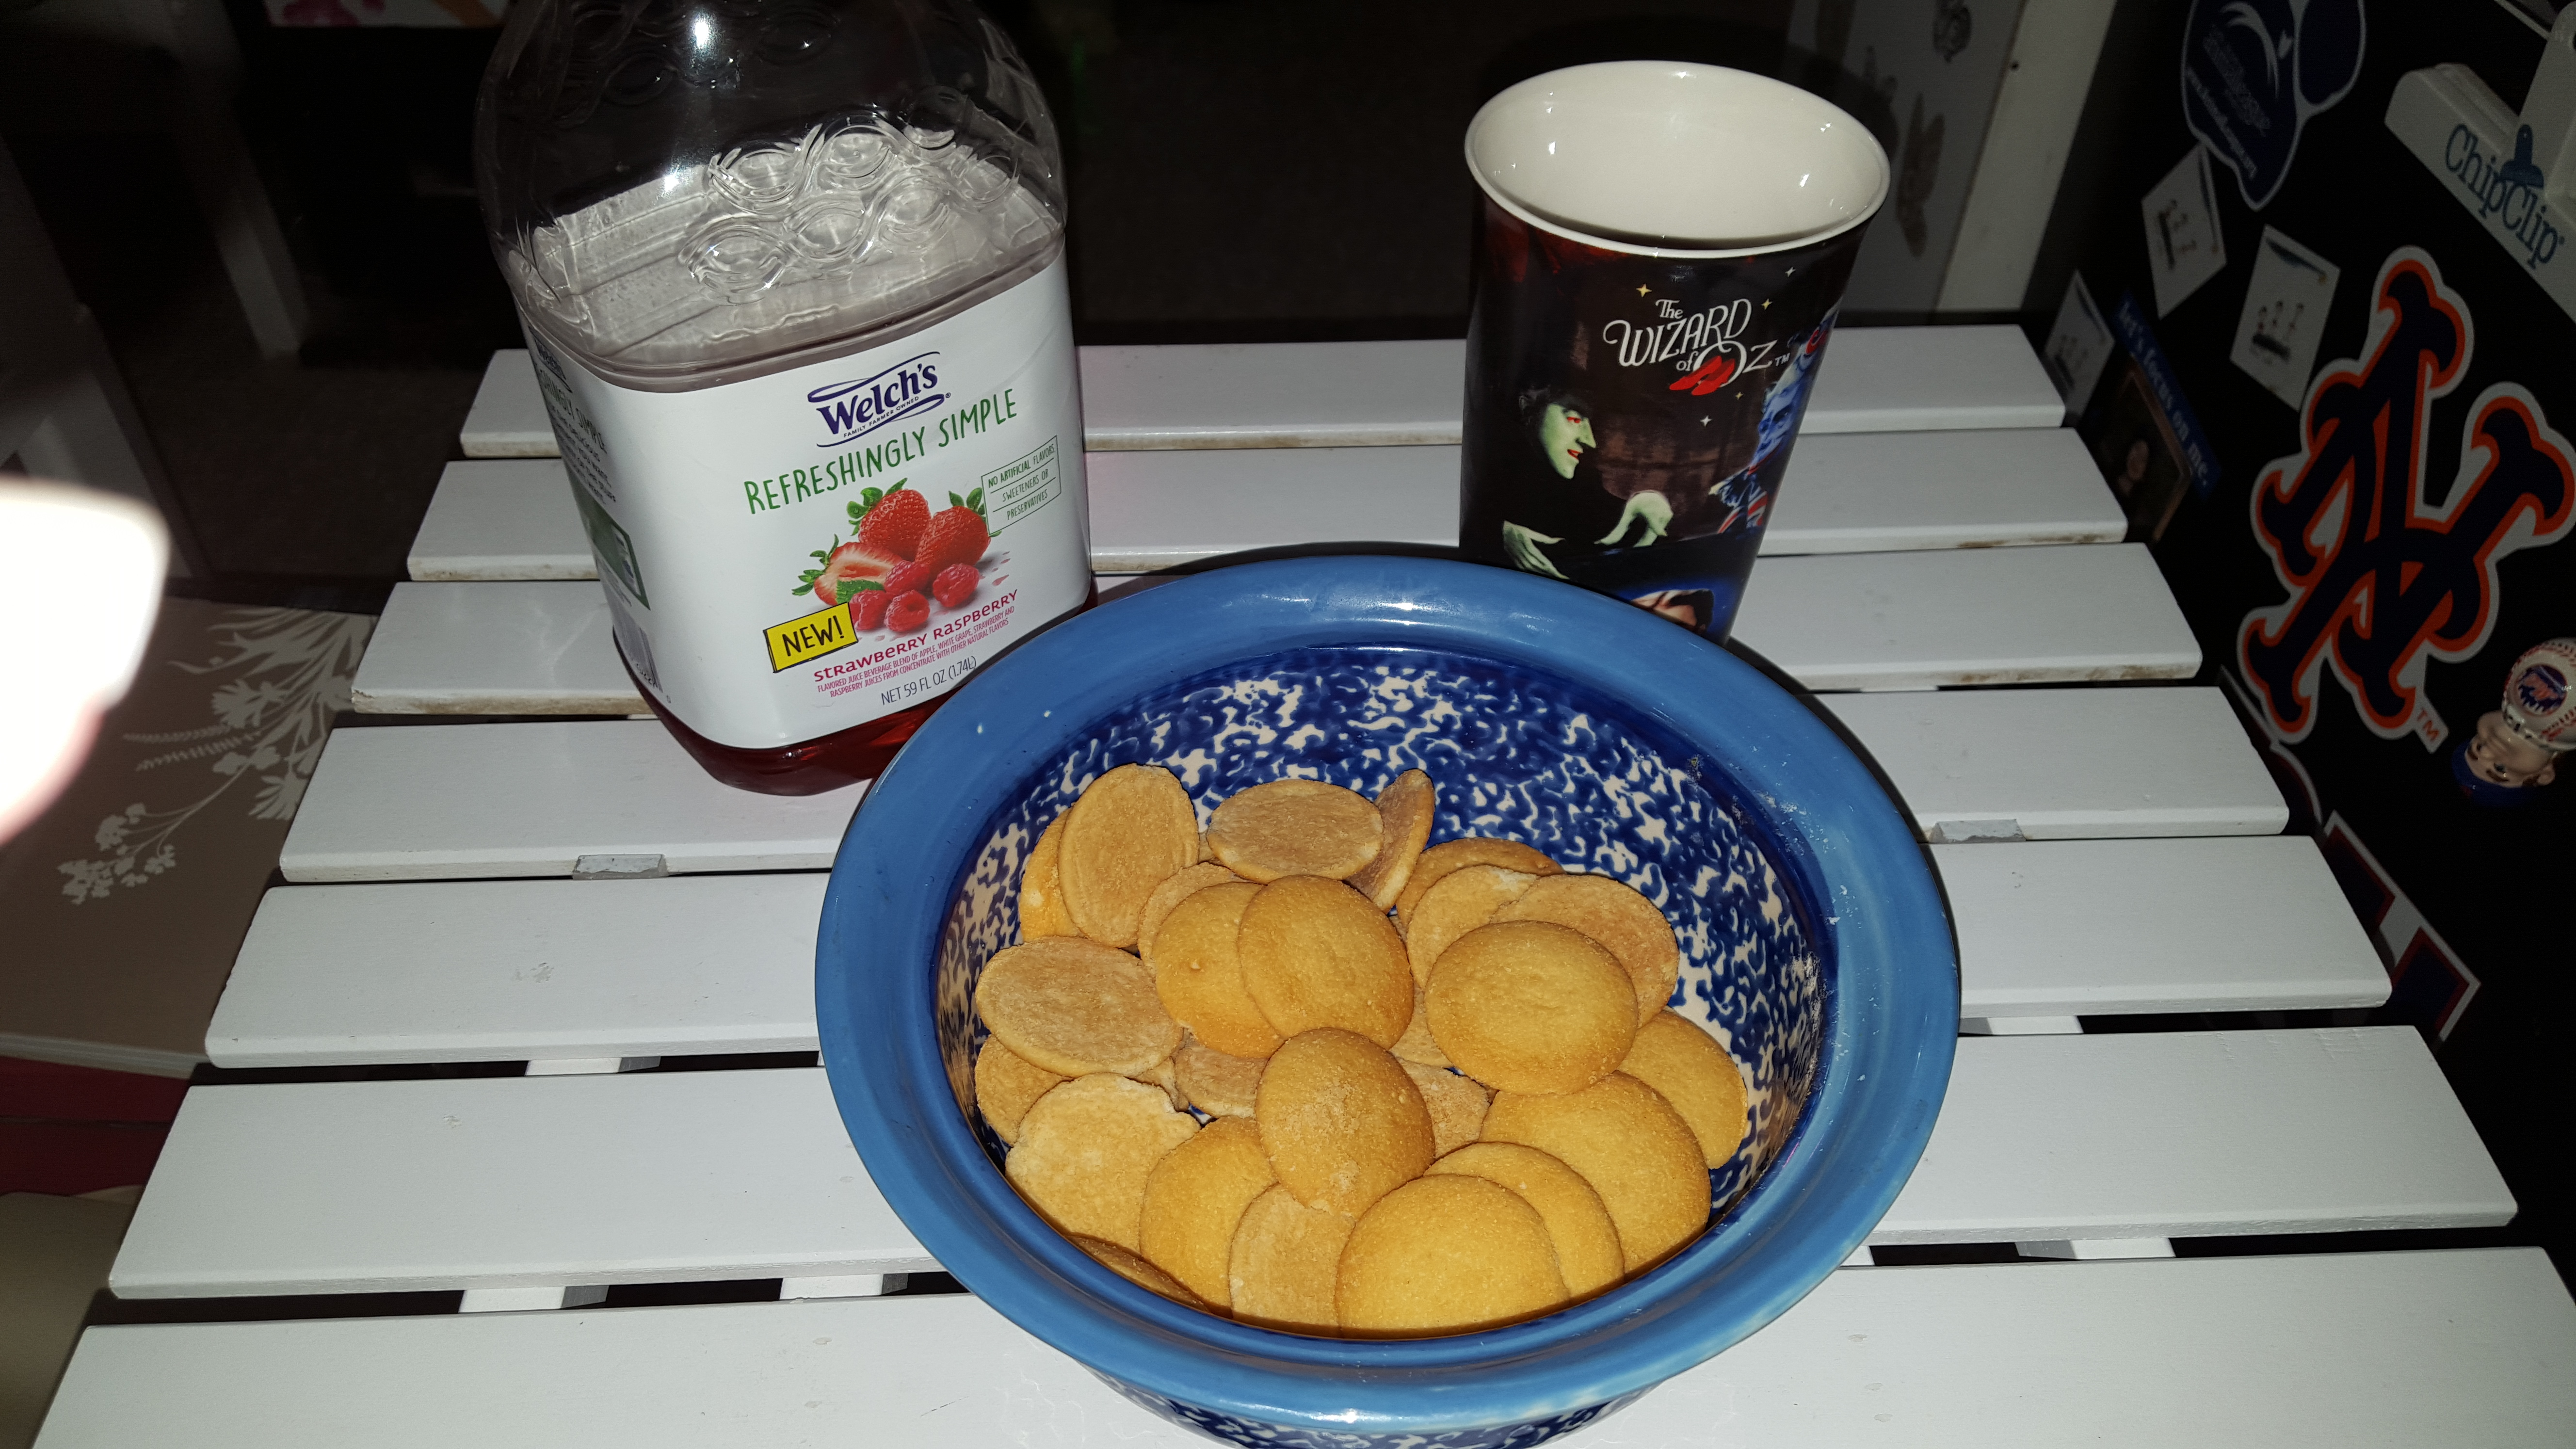 Welch's Refreshingly Simple Juice Review